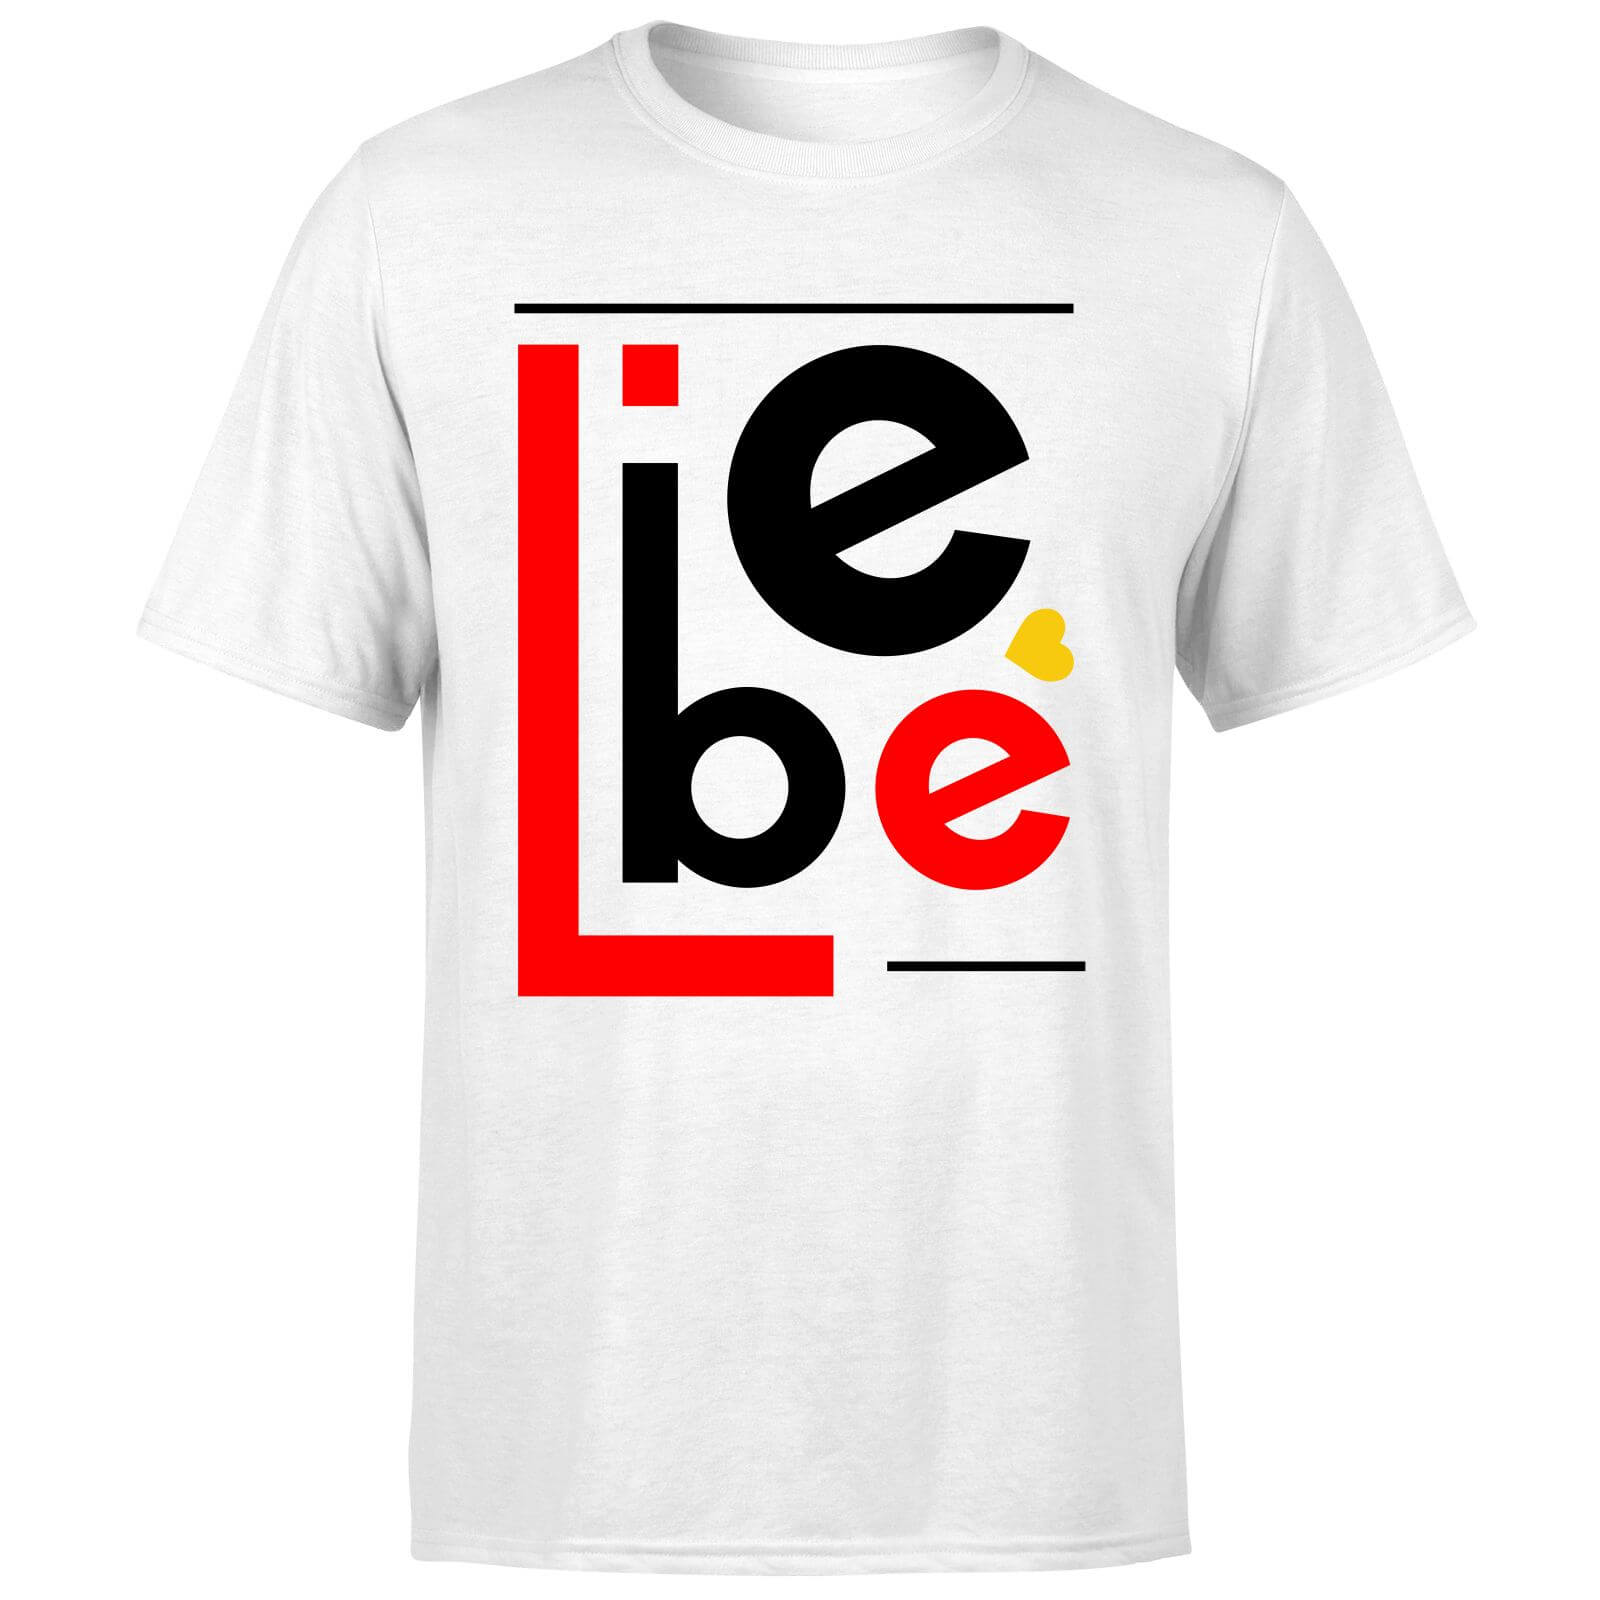 Liebe Block T-Shirt - White